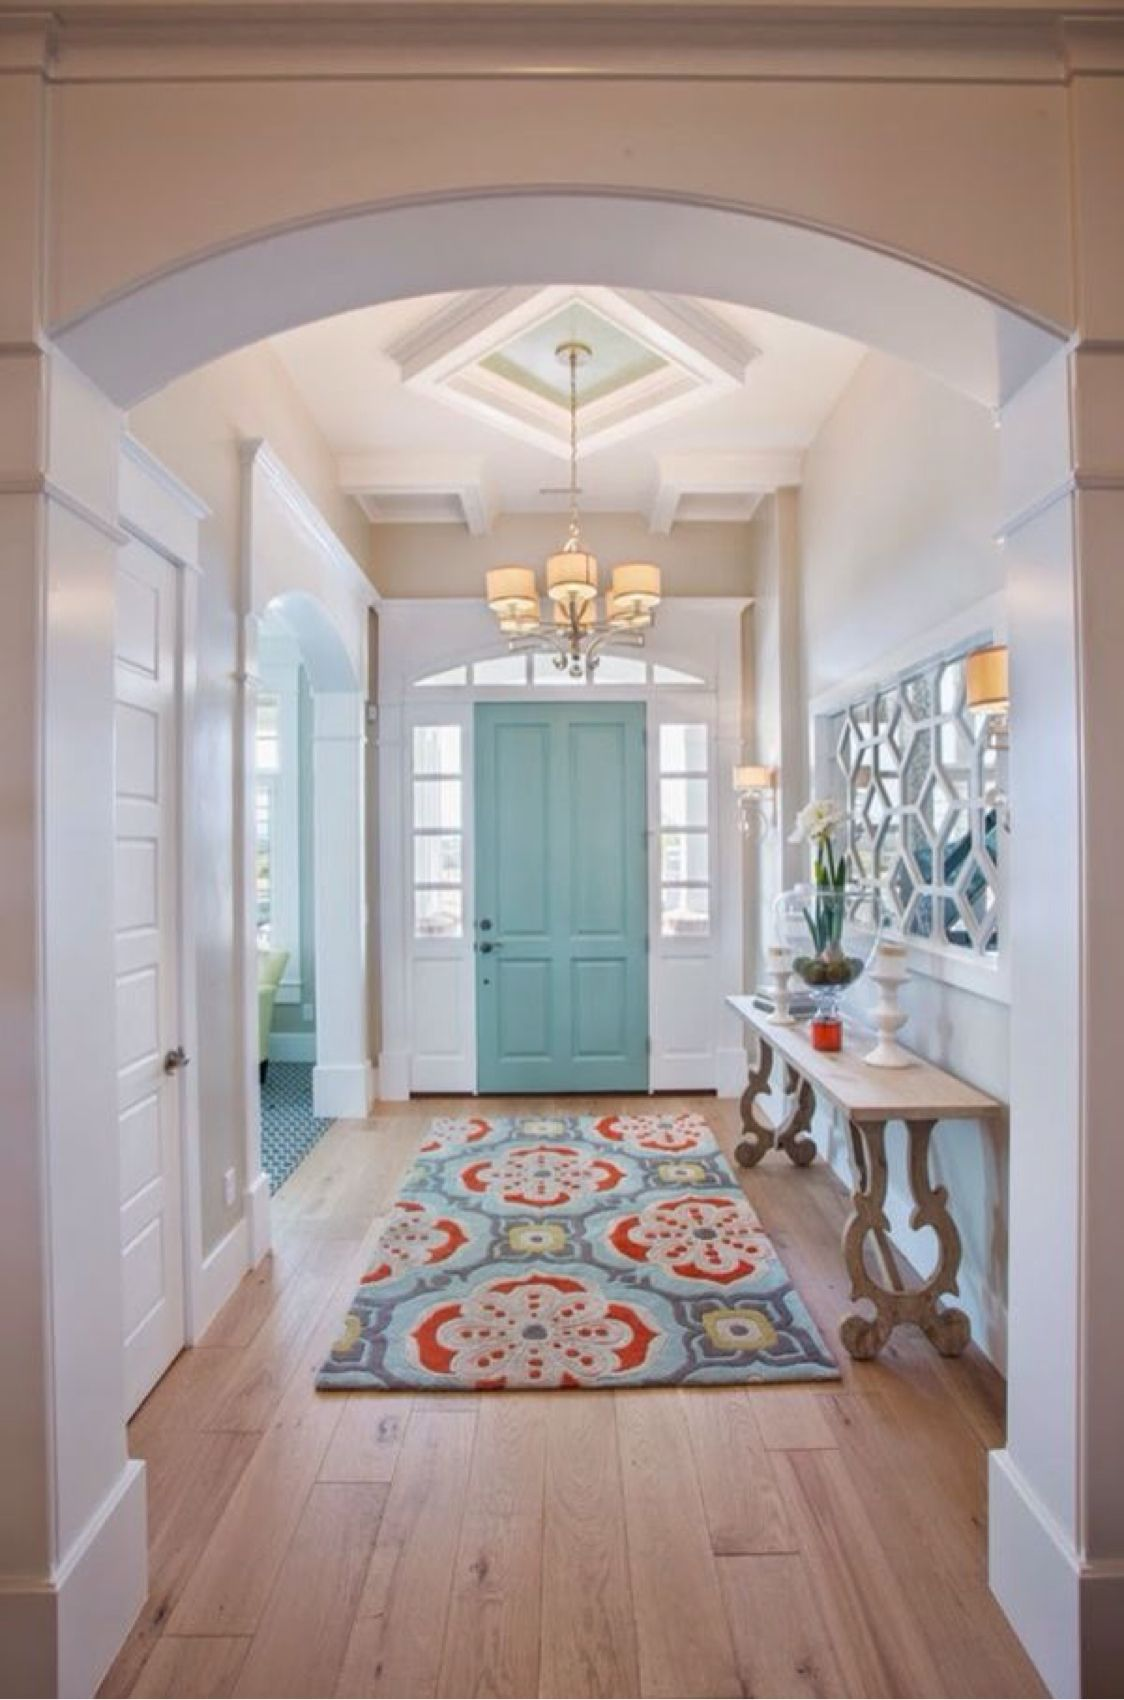 bright rug adds interest entry way decor ideas front entryway door also welcoming rustic decorating that every guest will rh pinterest